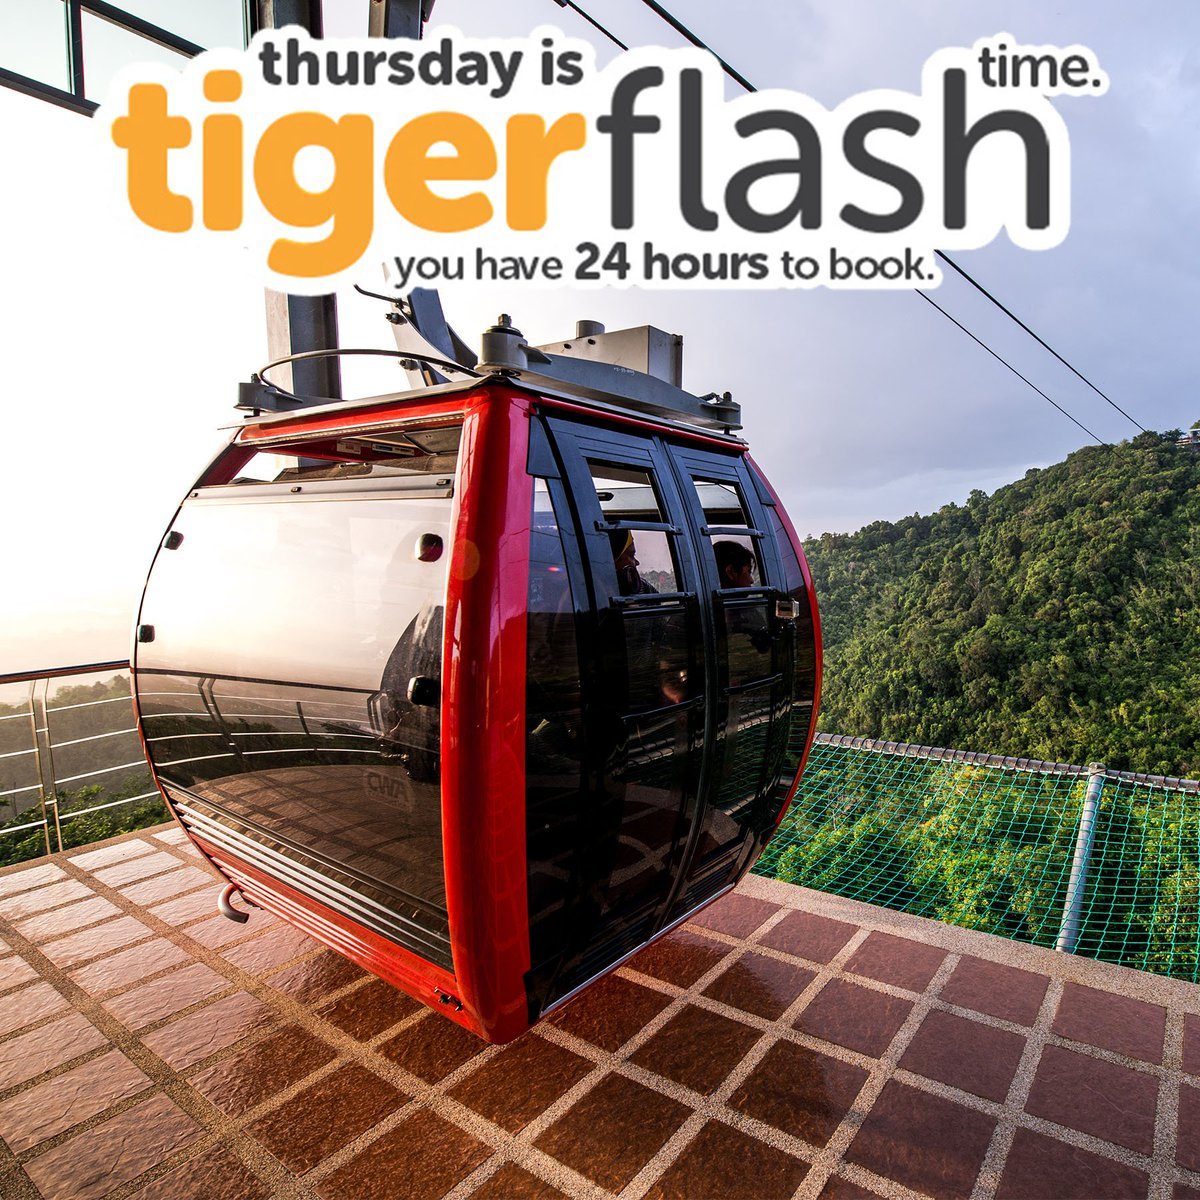 Escape to Hat Yai for a panoramic cable car ride amongst the mountains from only $68*. More #Tigerflash deals: https://t.co/KqQgzDoQZY https://t.co/GiAxfKpTw5